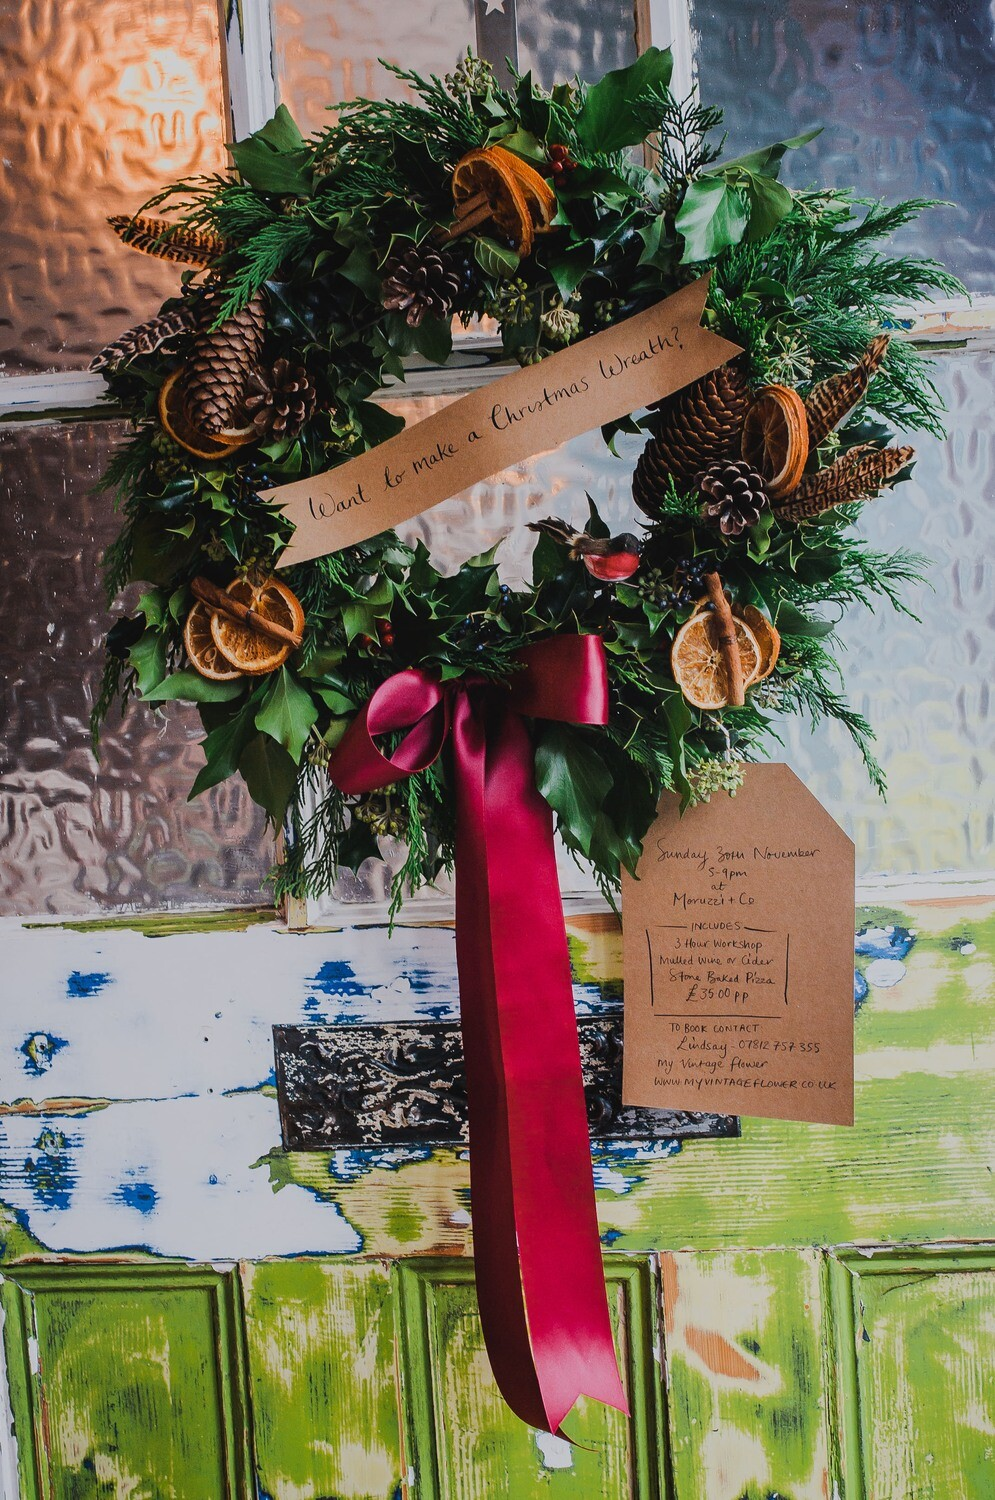 Wreath Workshop - Moruzzi & Co - Sunday 8th Dec